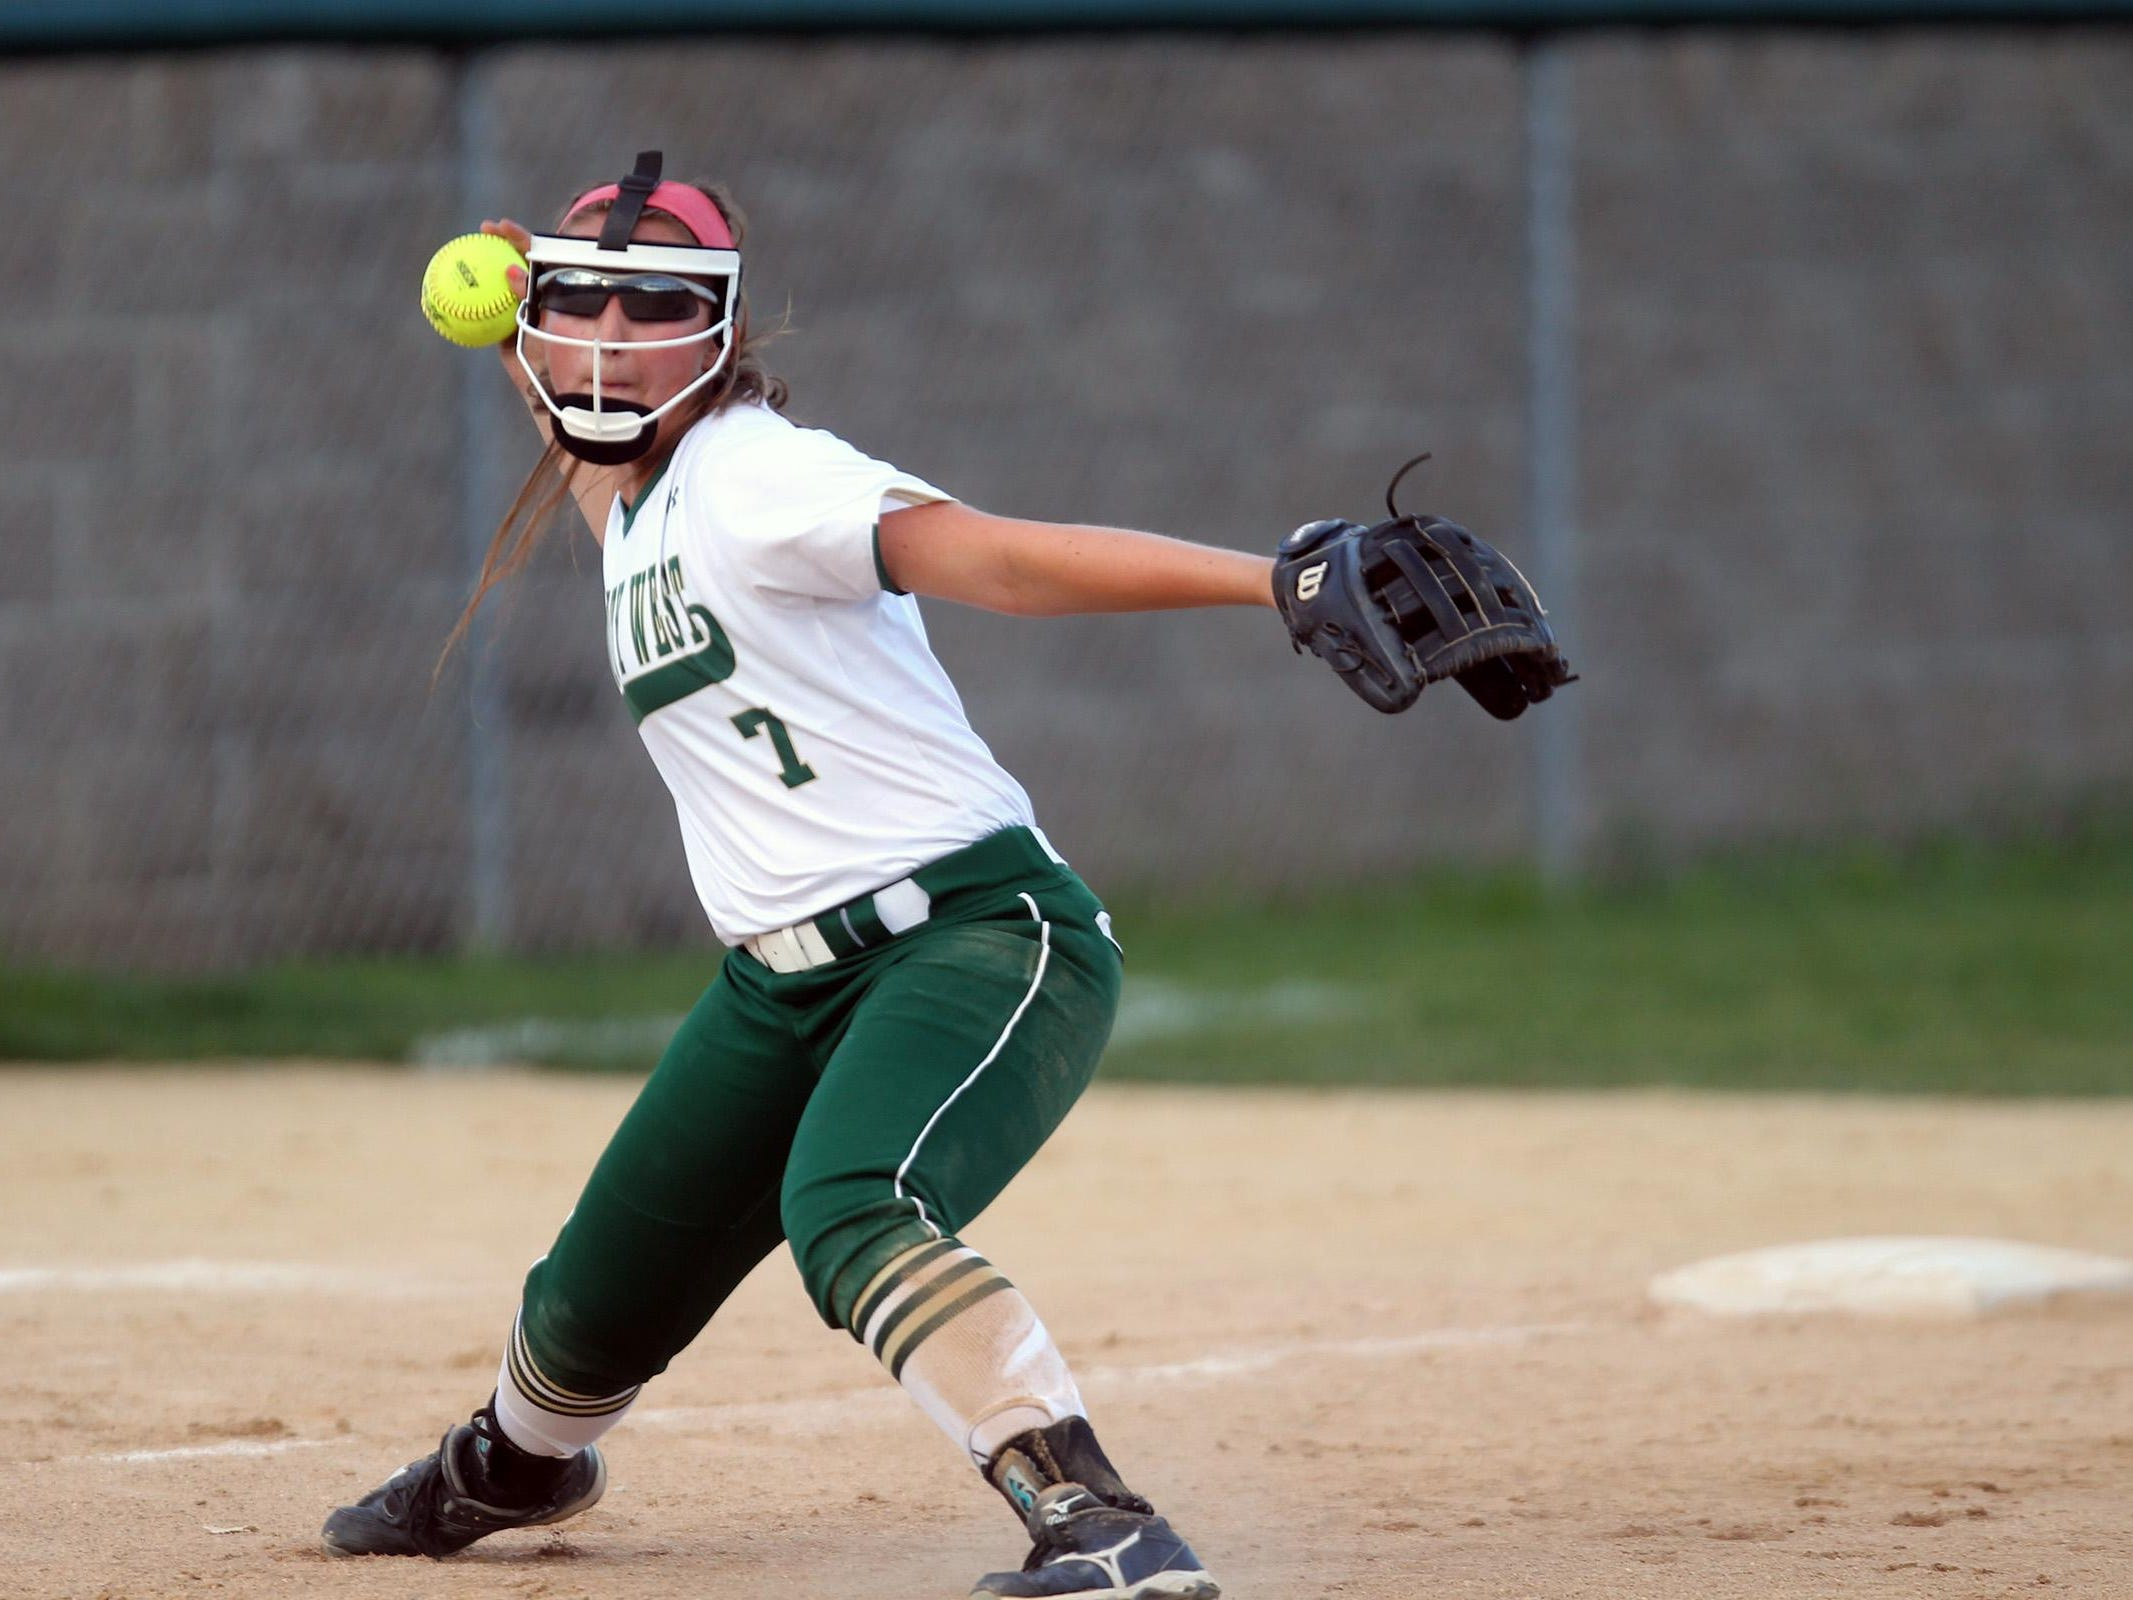 West High's Adara Opiola throws to first base during the Women of Troy's Class 5A regional championship game against Ankeny at West High on Tuesday, July 14, 2015. Ankeny won, 3-1, to head to state. David Scrivner / Iowa City Press-Citizen